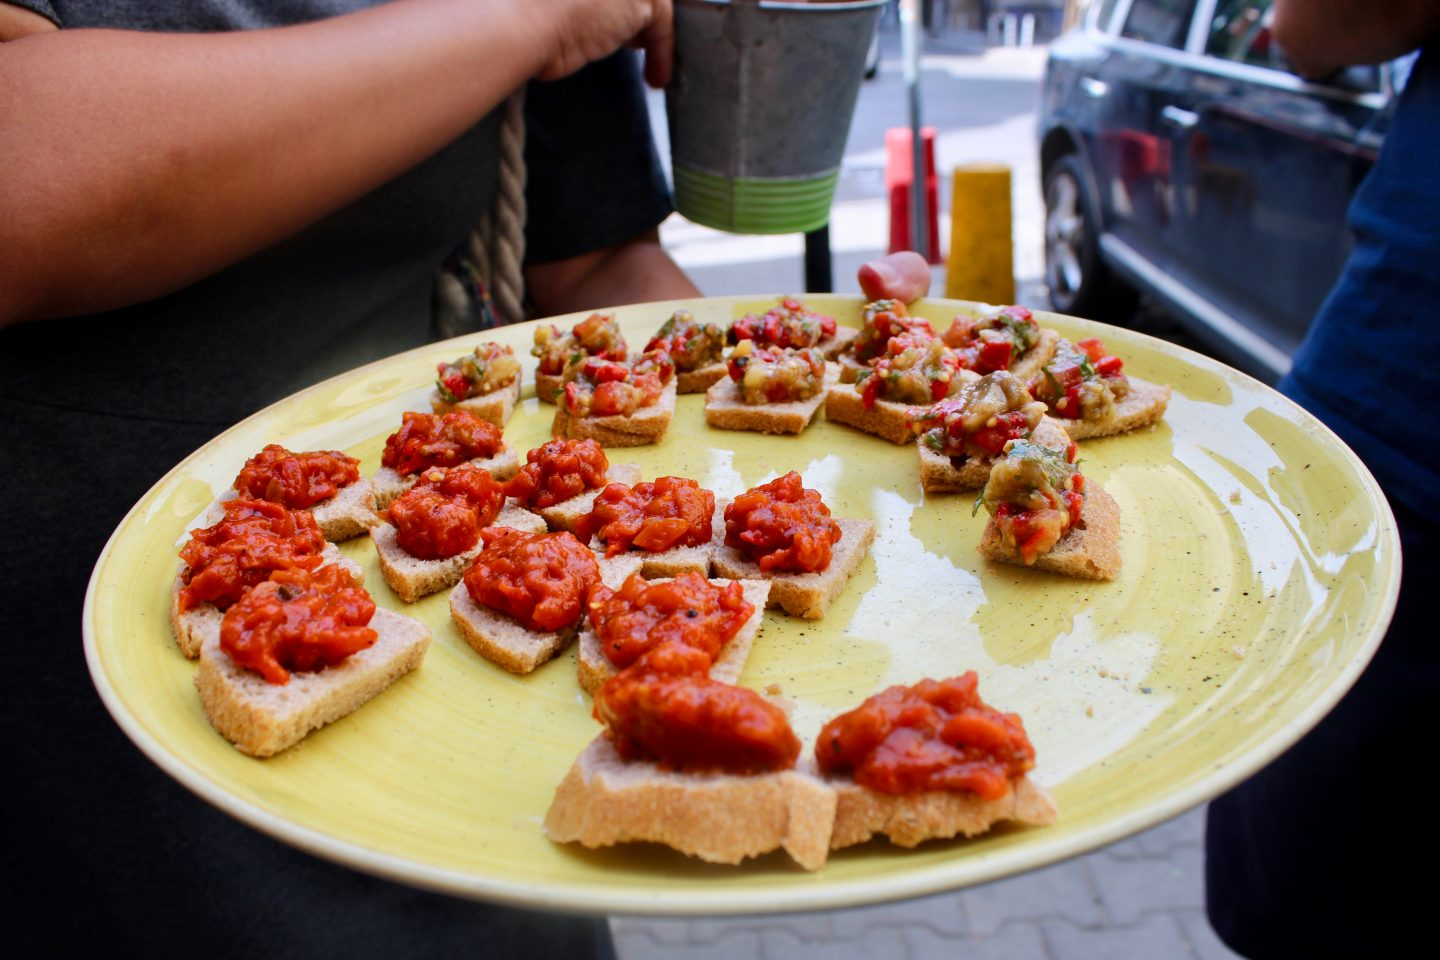 traditional bulgarian food in sofia: a plate topped with bitesize portions of bread topped with a bright red relish